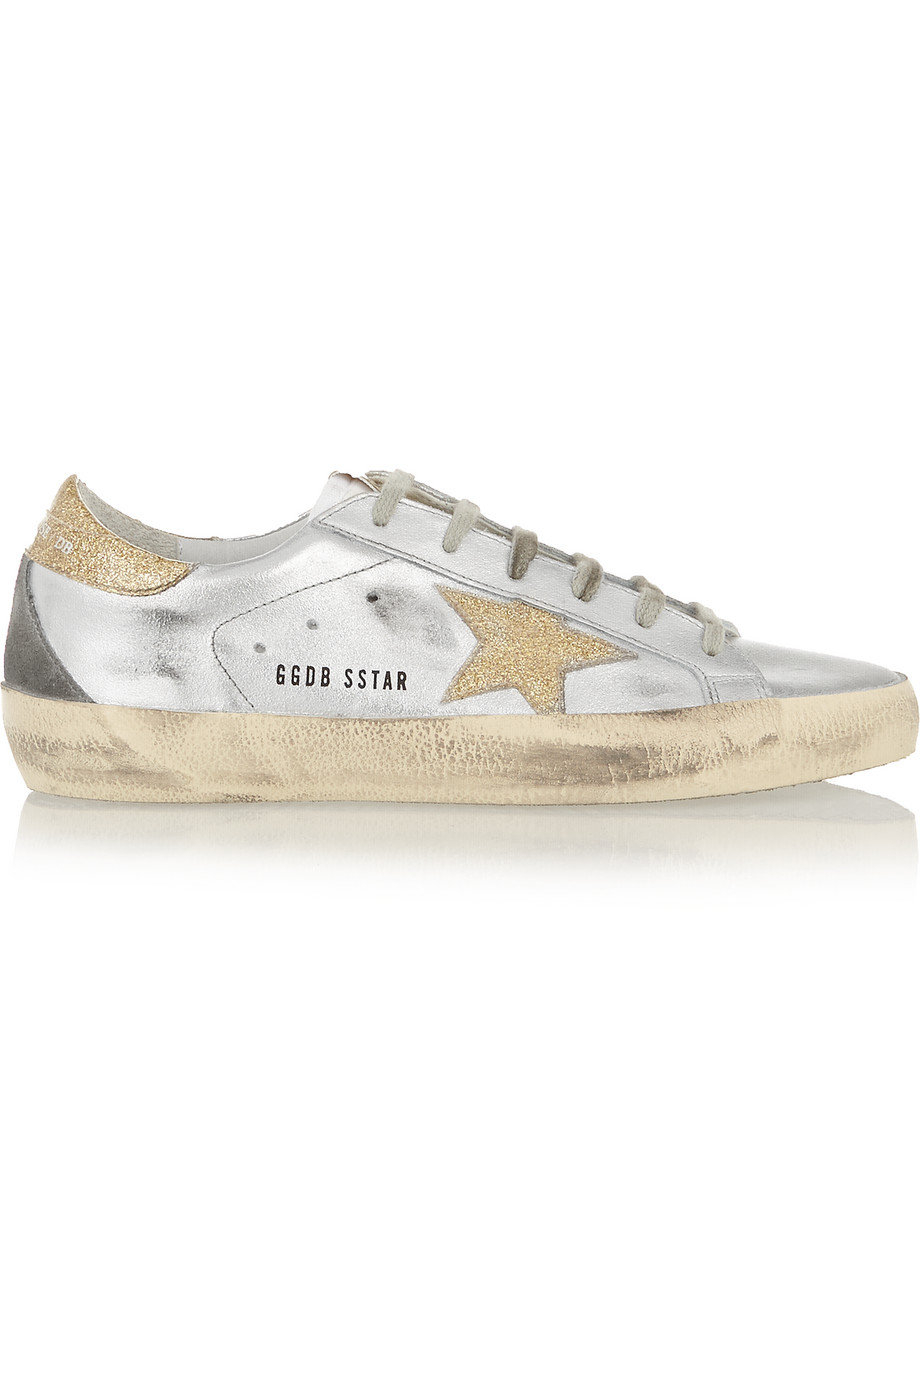 Super Star Distressed Metallic Leather Sneakers, Silver, Women's US Size: 4.5, Size: 35